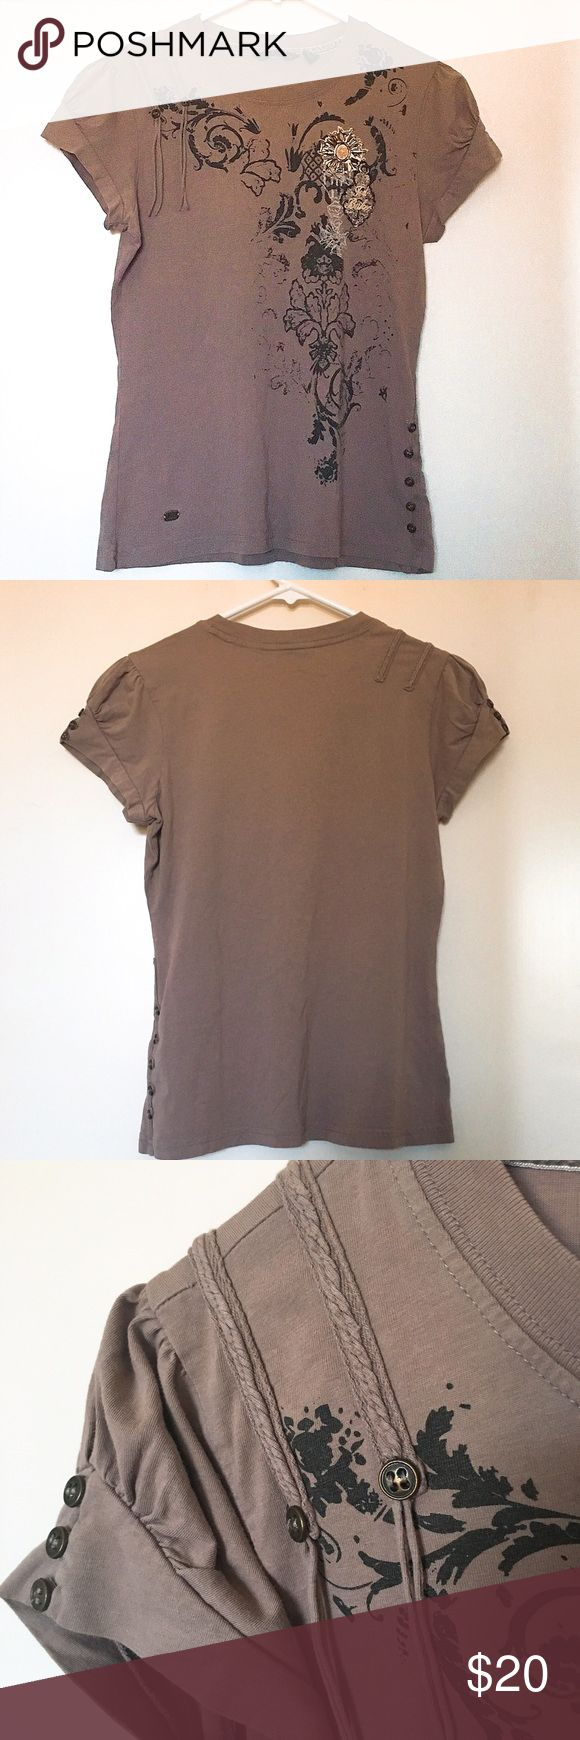 Ted Baker Embellished Tee Dusty rose-coloured Ted Baker statement tee. Fitted with lots of fun details. This is a Ted Baker size 2, which converts to a US size 6. 100% cotton. Ted Baker Tops Tees - Short Sleeve